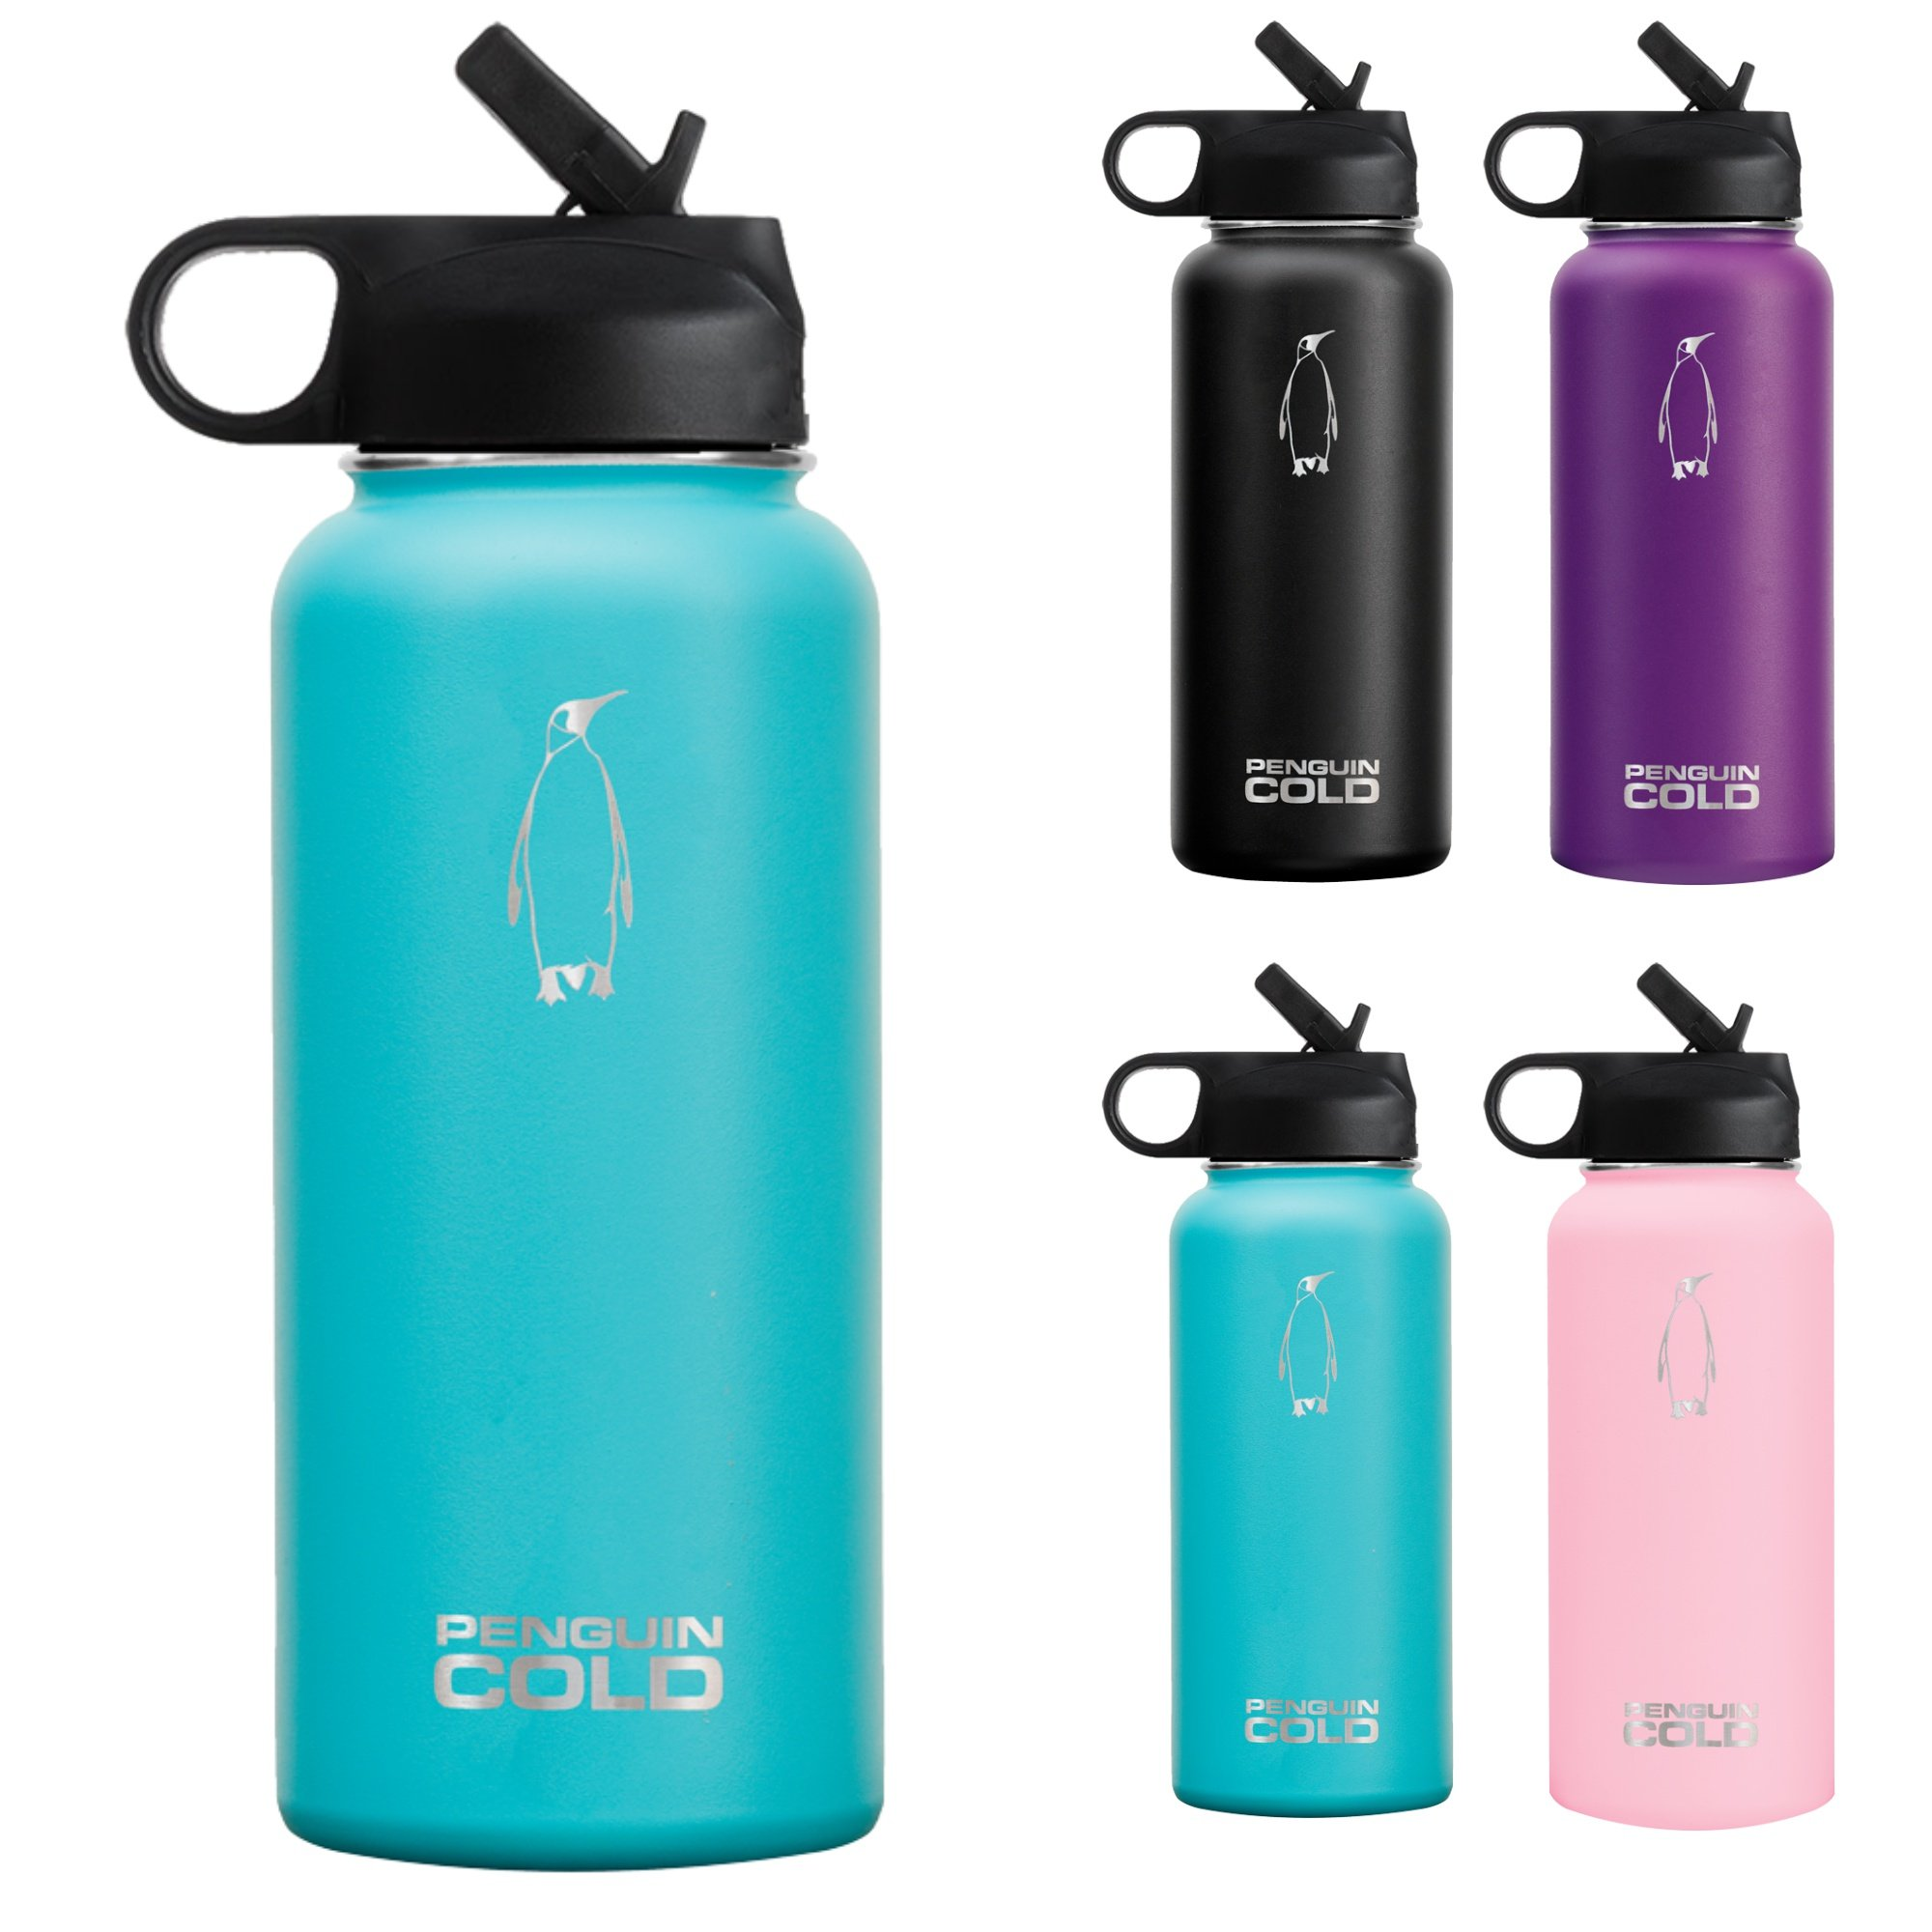 Penguin Cold Insulated Stainless Steel Bottle - 32oz Teal, Wide Mouth Bottle, Straw Lid - BPA-Free